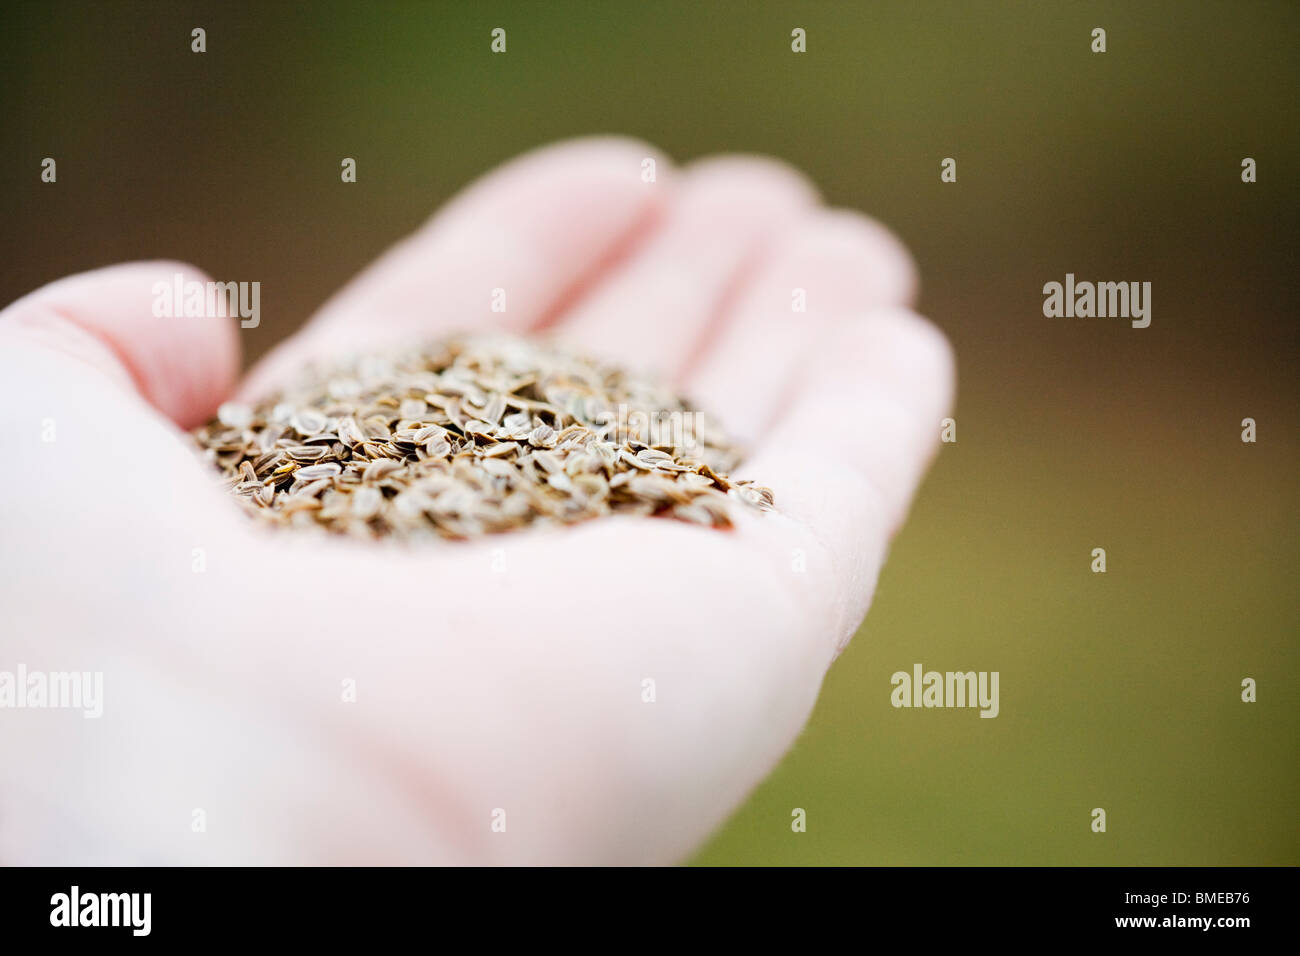 Seeds in a hand, Sweden. - Stock Image